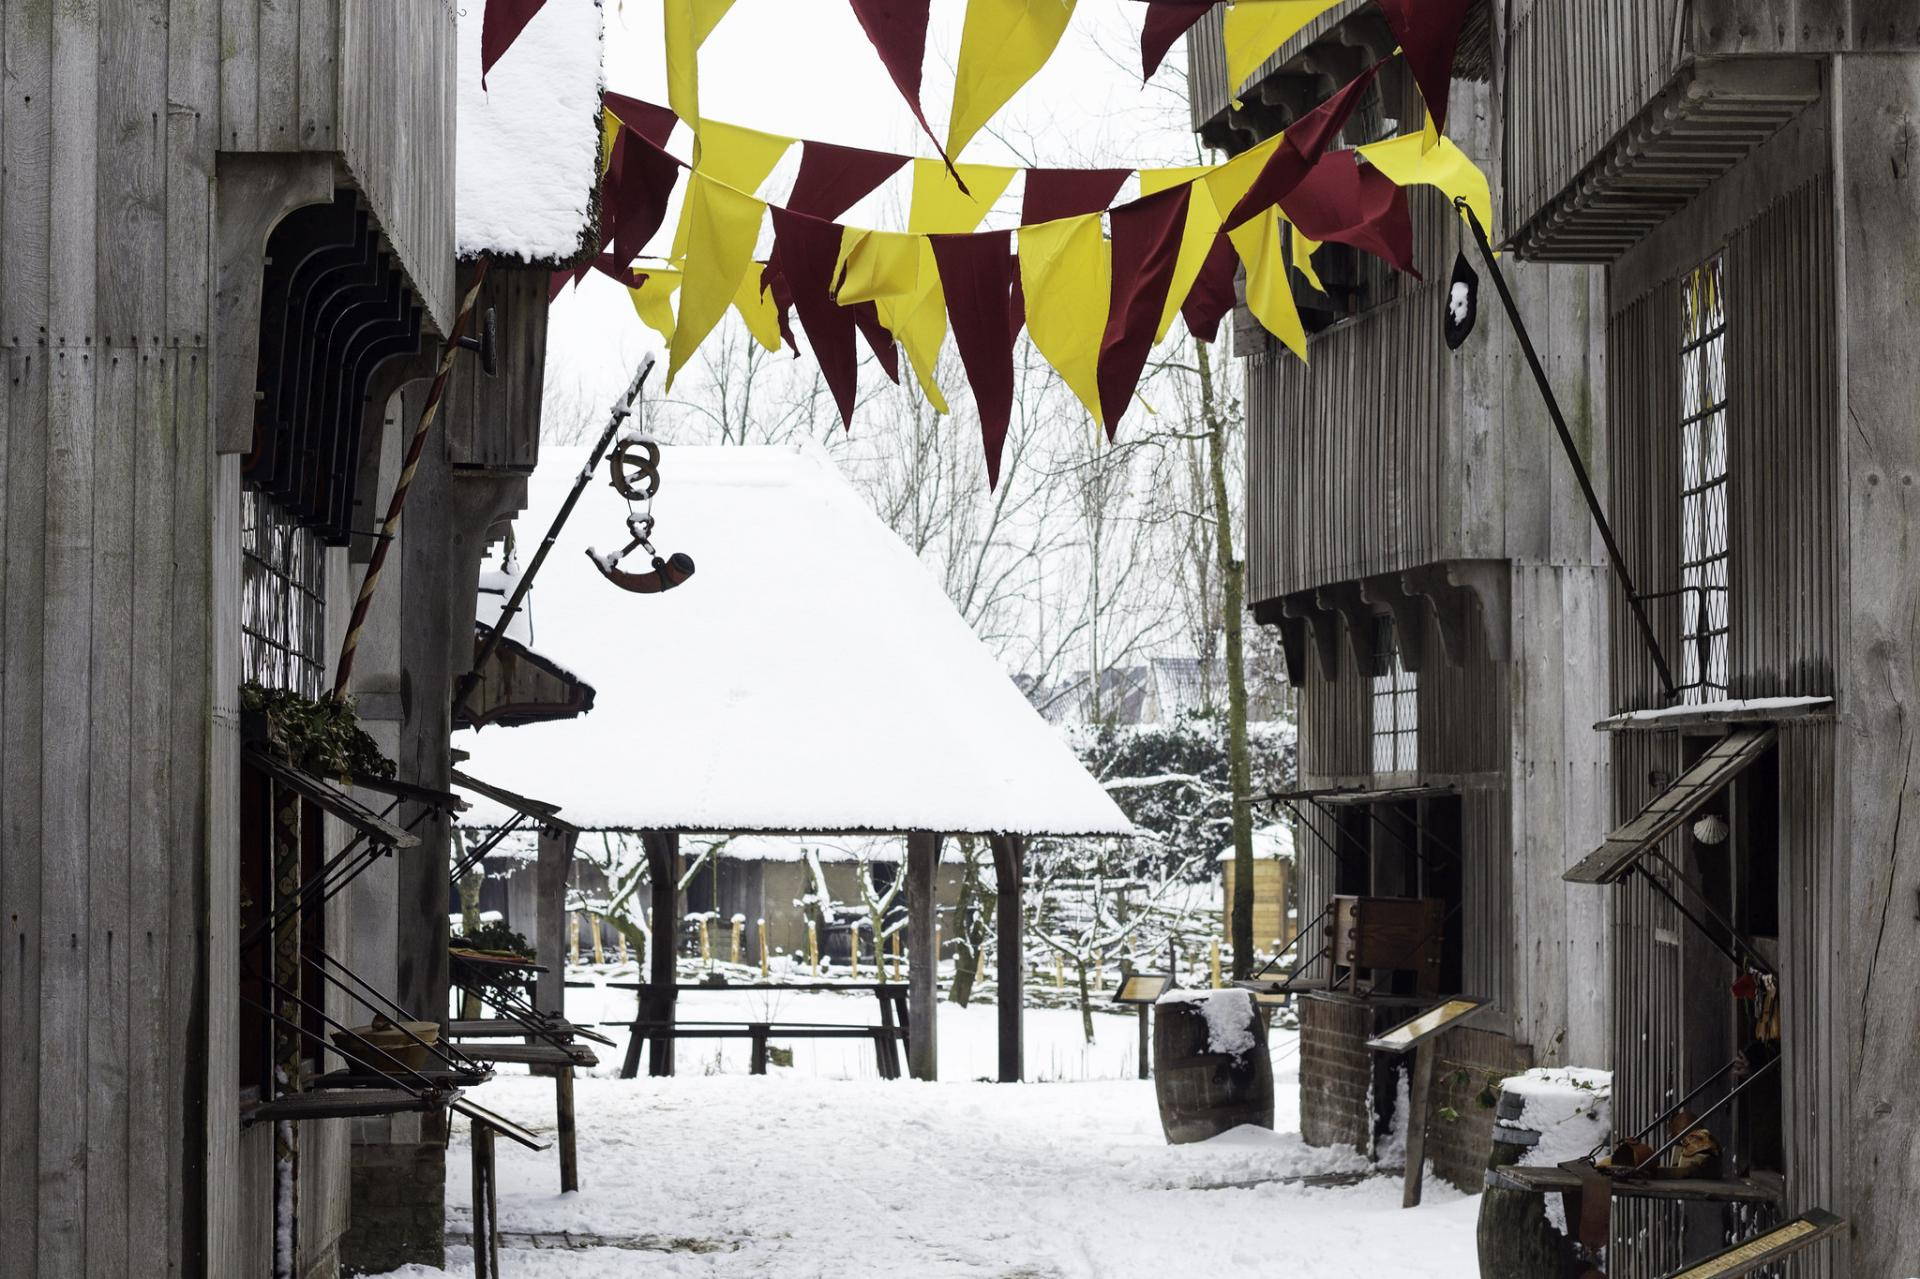 Winter in Archeon